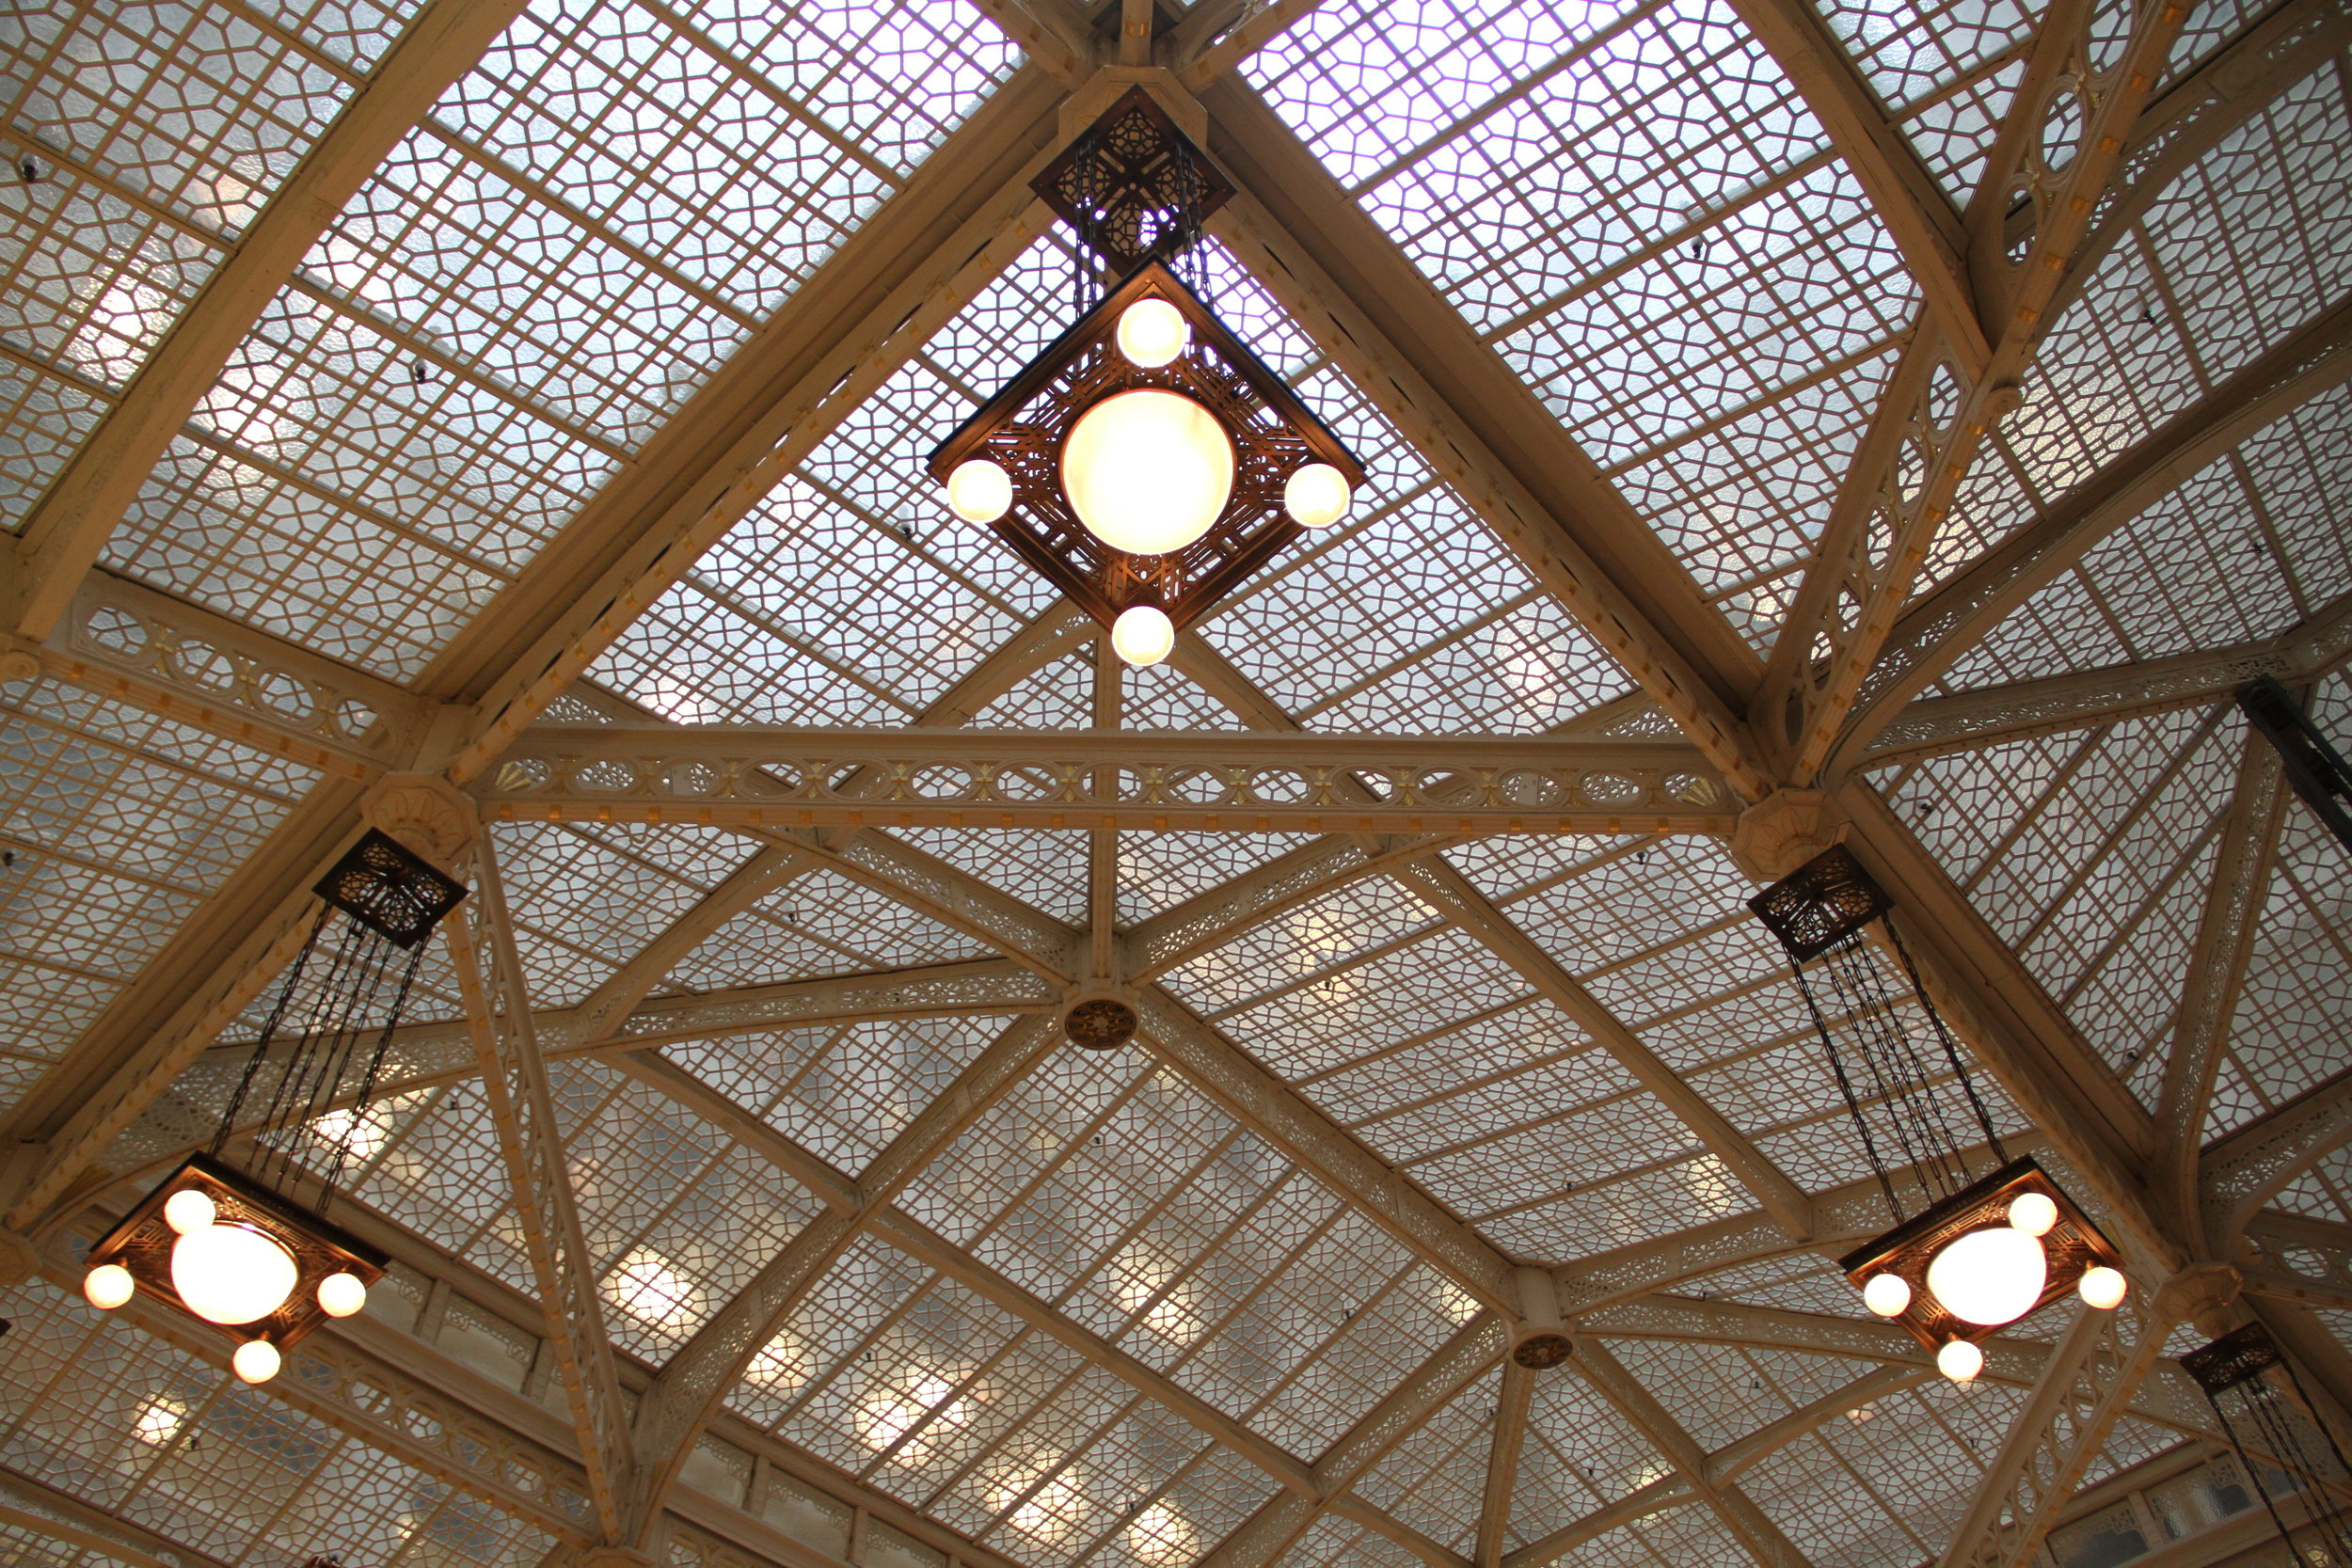 The ceiling of The Rookery in Chicago, Illinois.